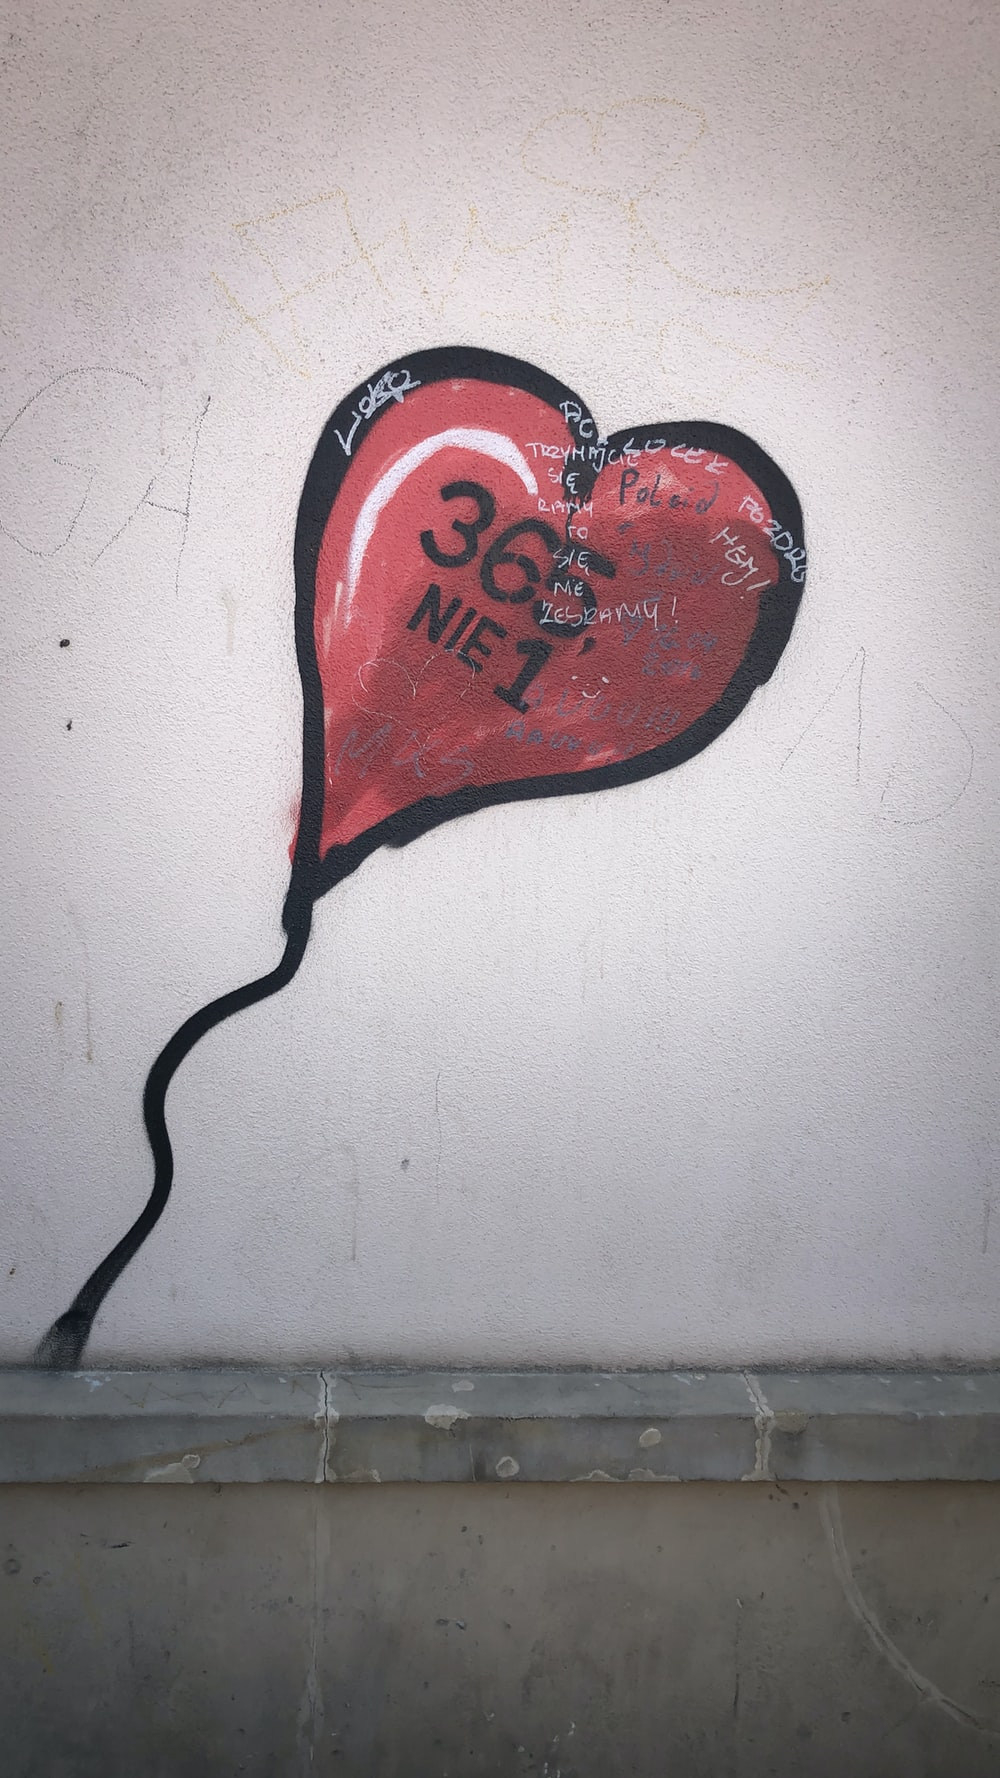 red and white heart shape balloon